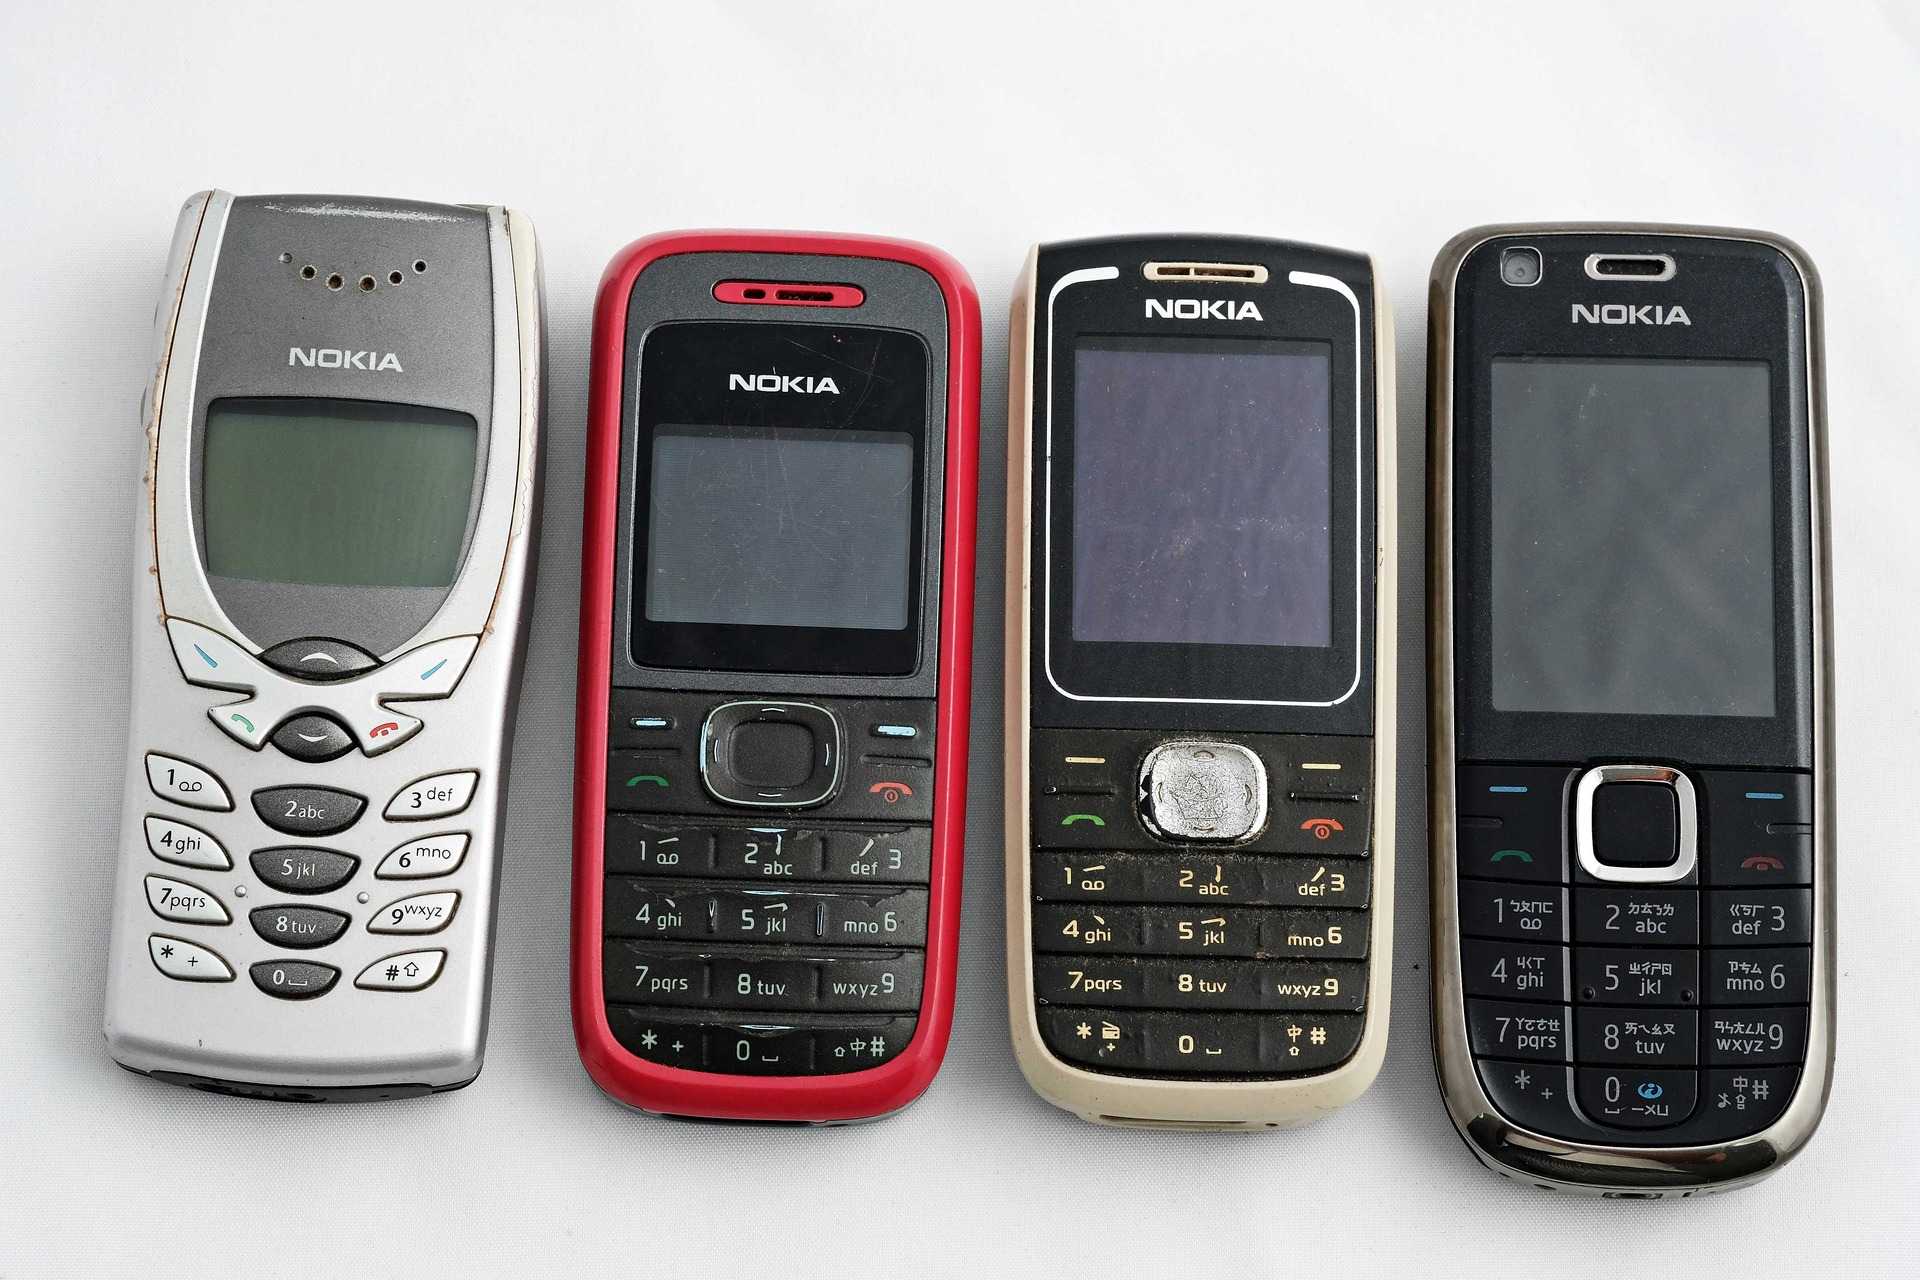 The mistake that brought down Nokia's mobile empire